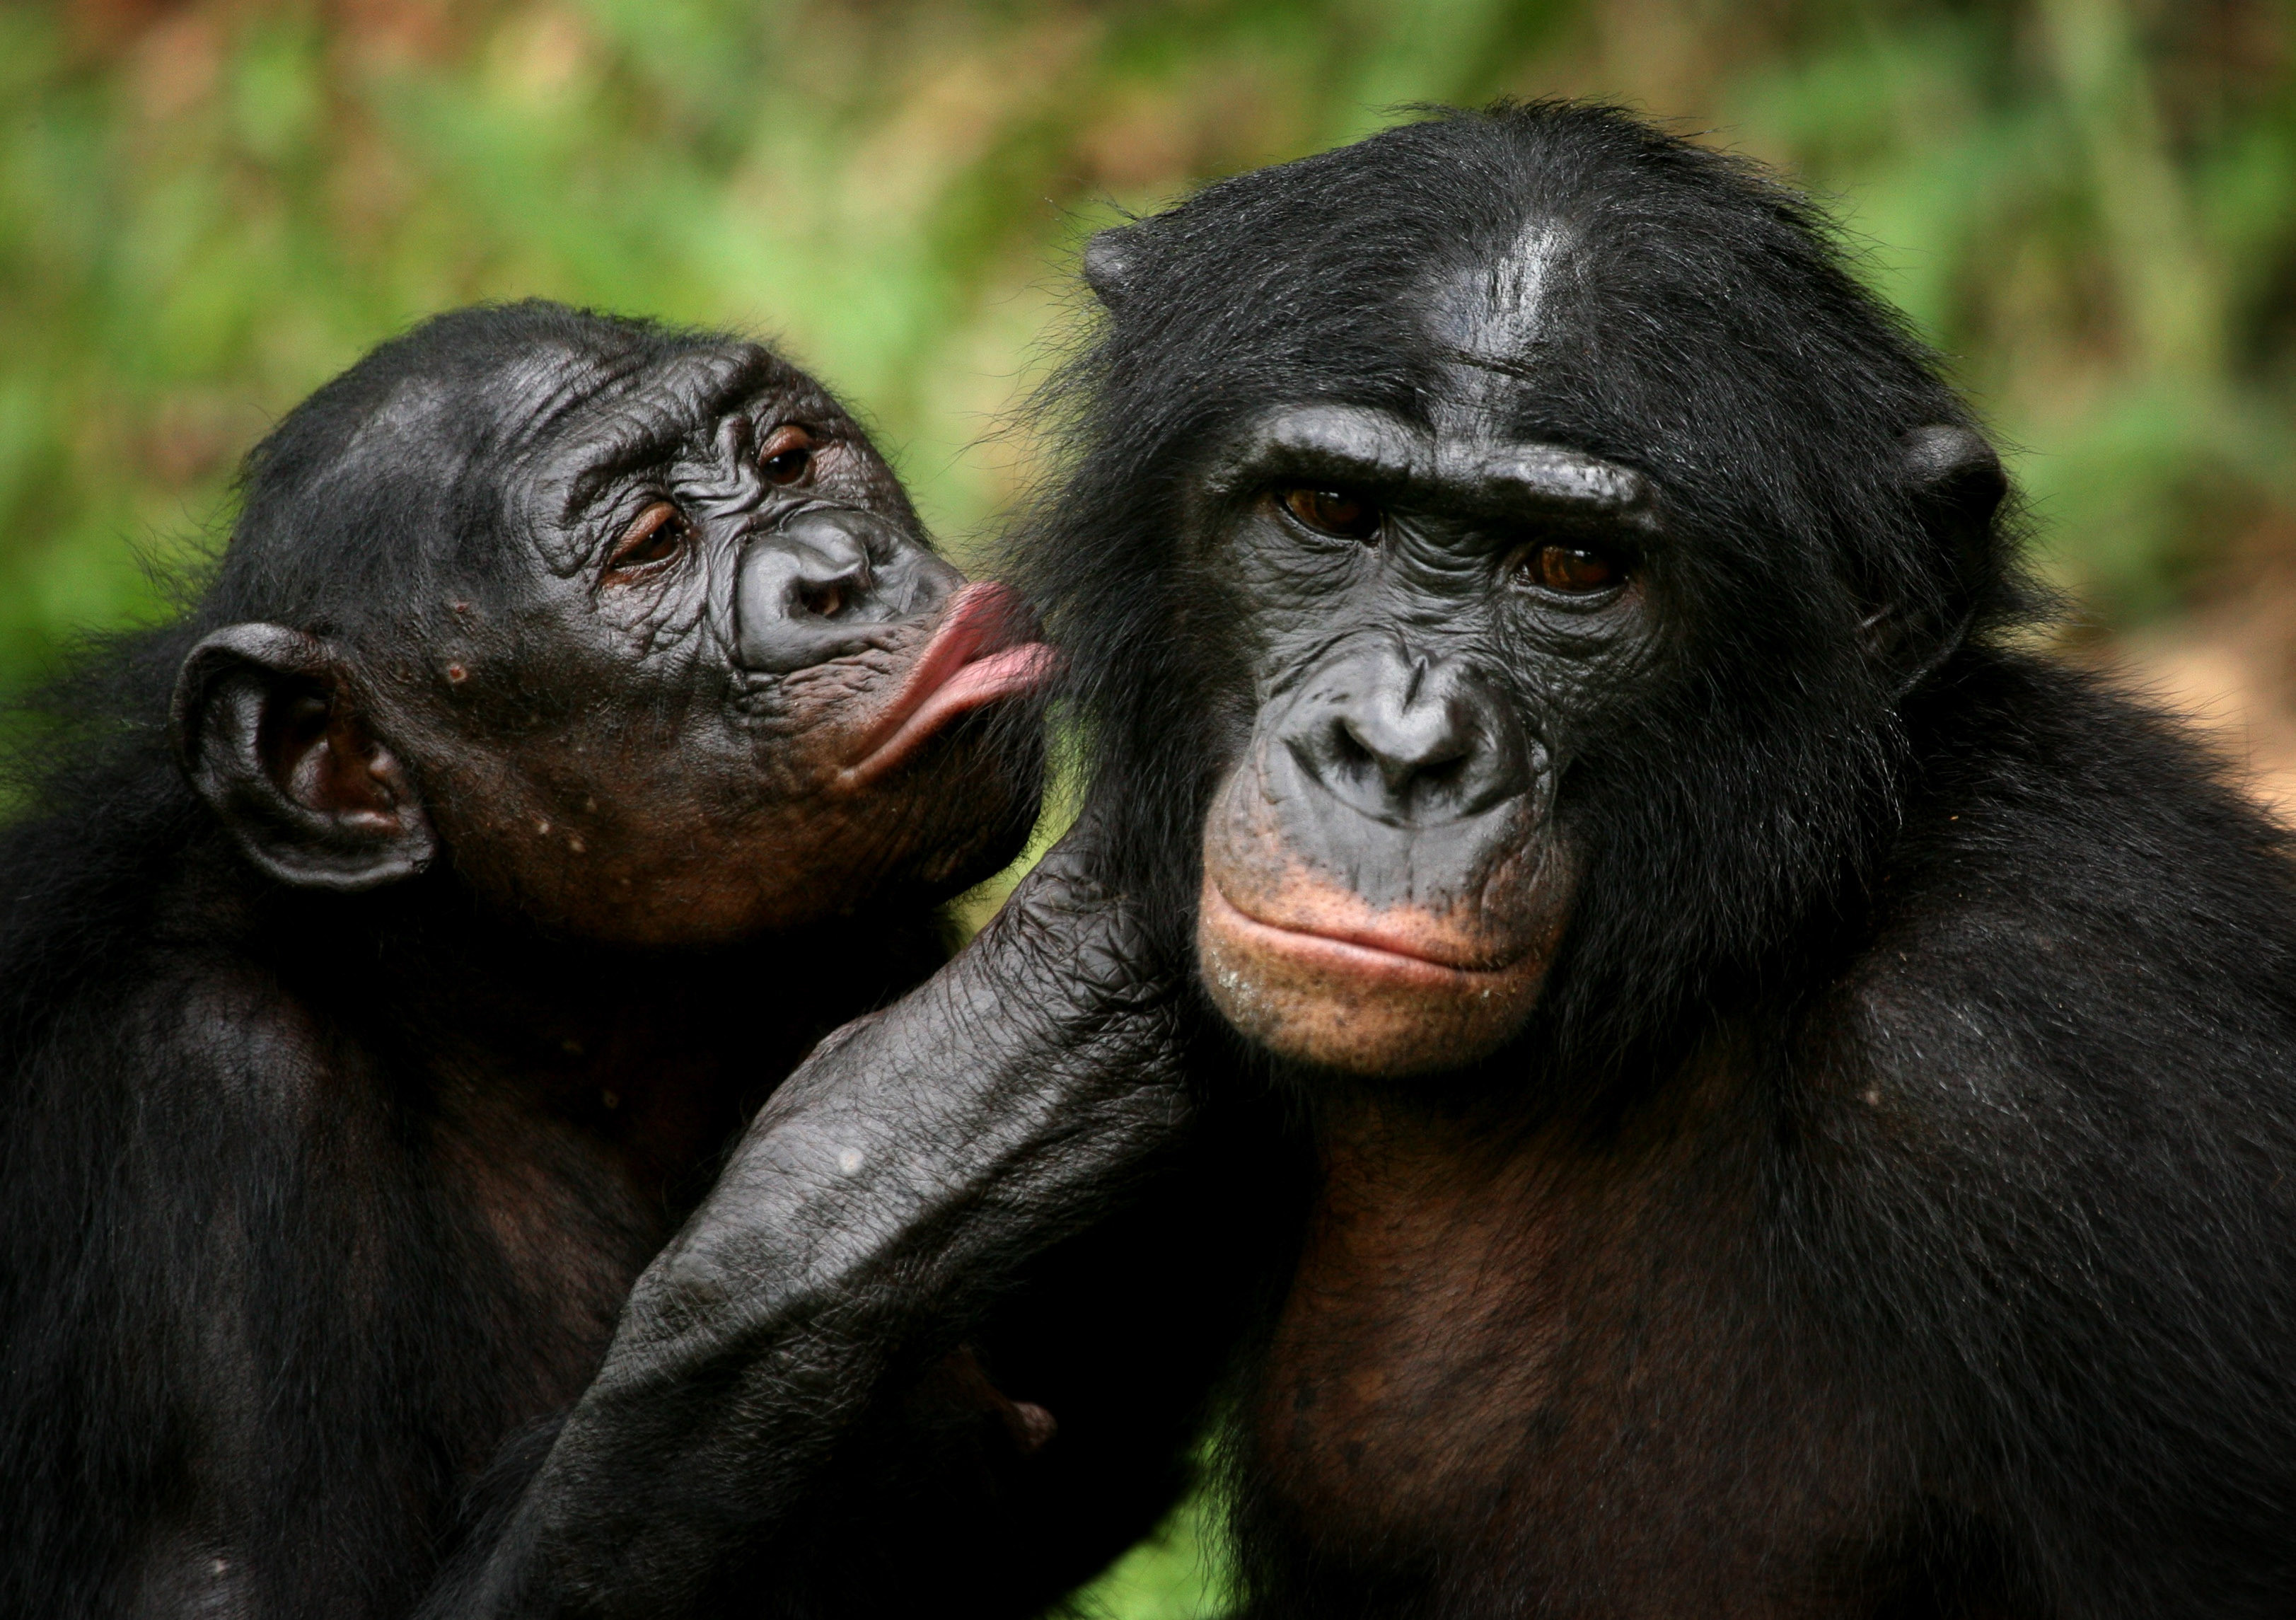 Bonobo apes, primates unique to Congo and humankind's closest relative, groom one another at a sanctuary just outside the capital Kinshasa, Congo on October 31, 2006.   REUTERS/Finbarr O'Reilly/File Photo - TM3ECAR15L201